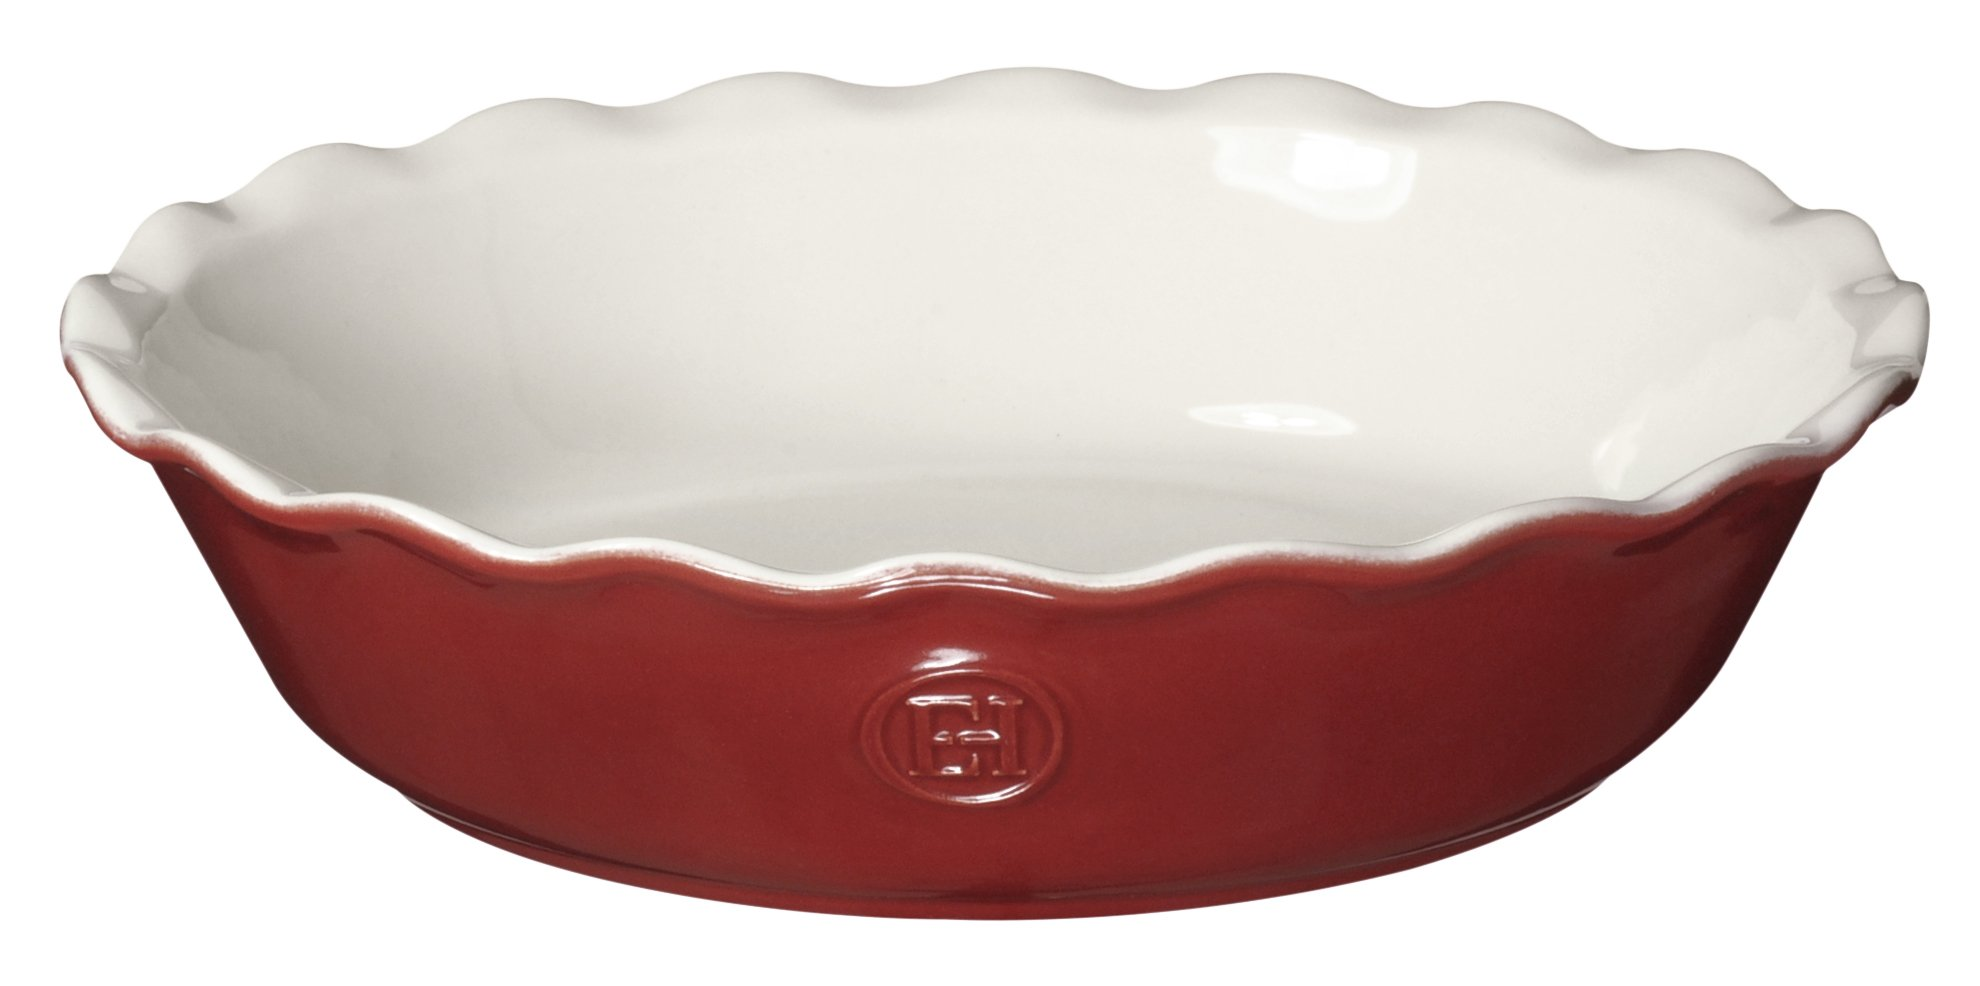 Emile Henry 366121 Modern Classics Pir Dish 9'', 9'', Rouge Red